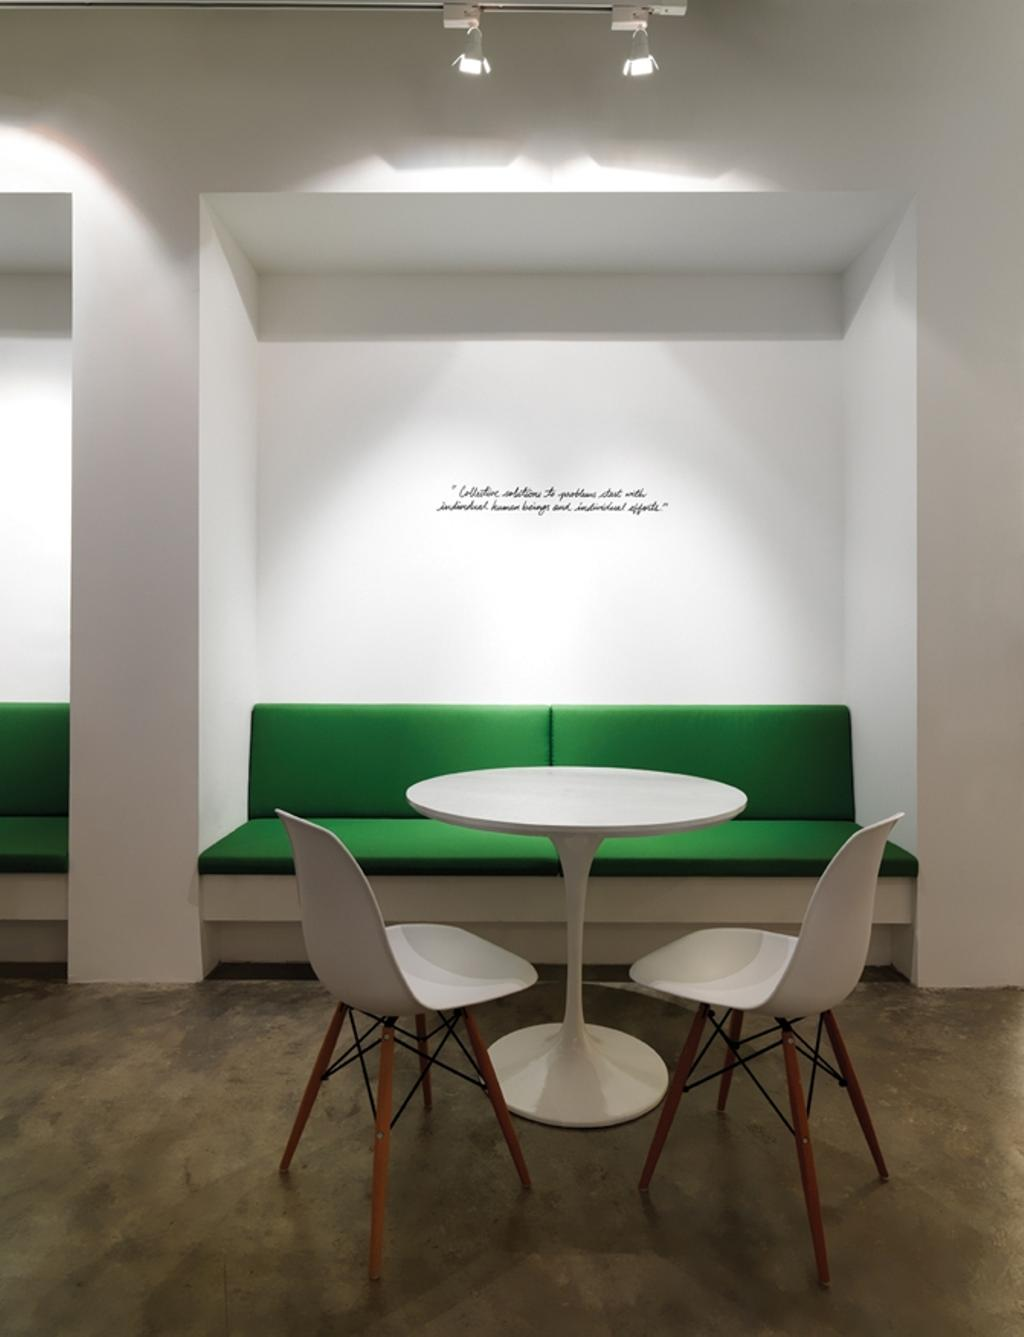 Leo Burnett, Commercial, Architect, Ministry of Design, Eclectic, White Ceiling, White Wall, White Chairs, White Table, Round Table, Green Bench, Bench Seat, Chair, Furniture, Dining Room, Indoors, Interior Design, Room, Dining Table, Table